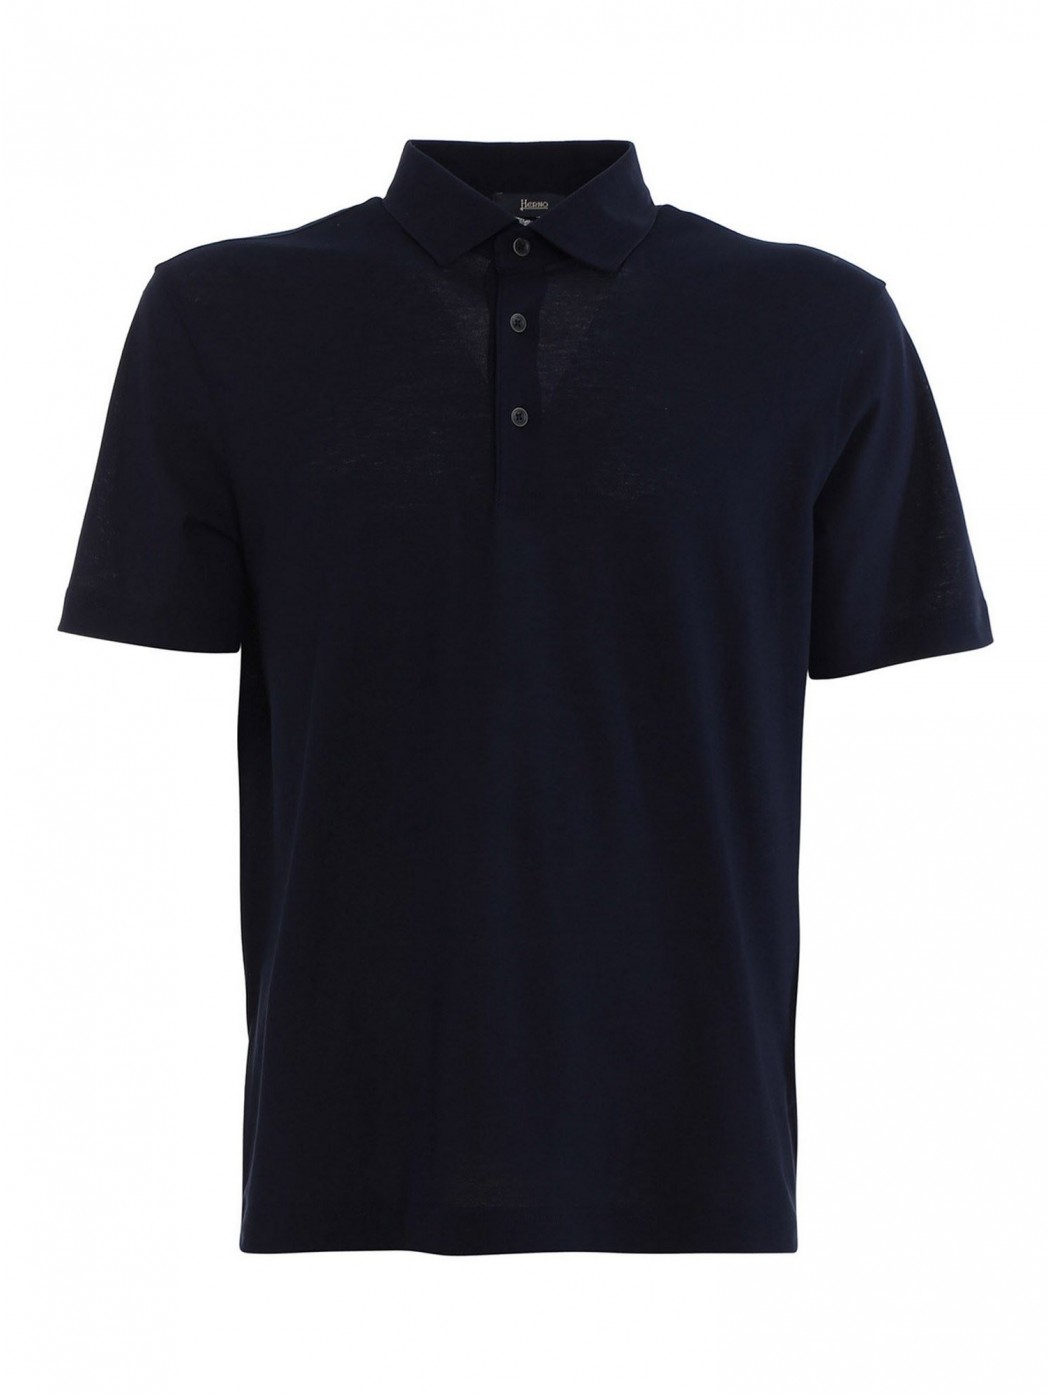 POLO JERSEY CREPE HERNO...